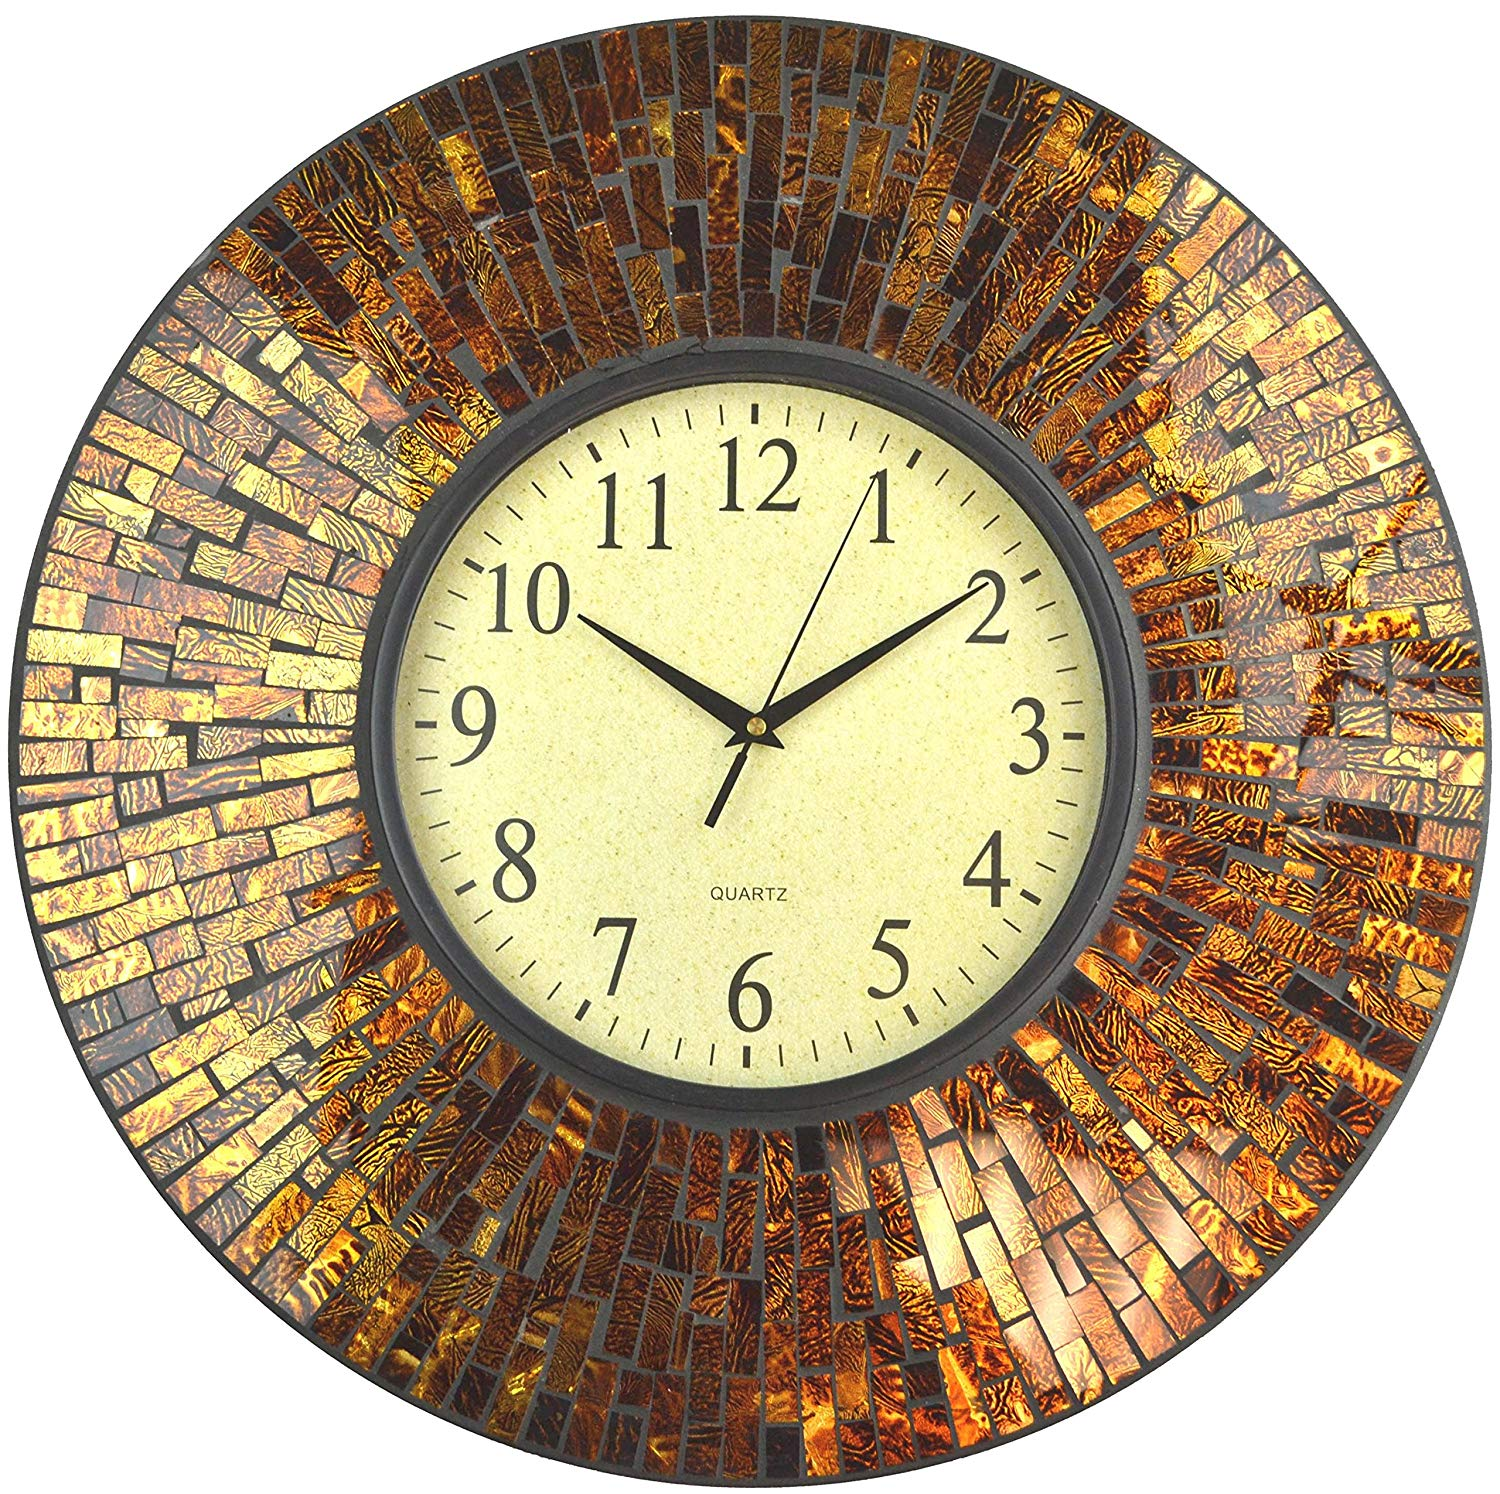 "Decorative handmade beautiful Amber mosaic wall clock with Arabic dial.  A great Home Accessories For Cozy Home Decor  Protected glass cover on the brown dial, dial measures 9.5"", clock diameter 19"". 1-year manufacturer warranty. High-quality quartz battery operated movement. Requires one AA battery (not included). Elegant and well made will match most wall decor and furniture. Works perfect as a Housewarming gift. Price: $84.99 & FREE Shipping"